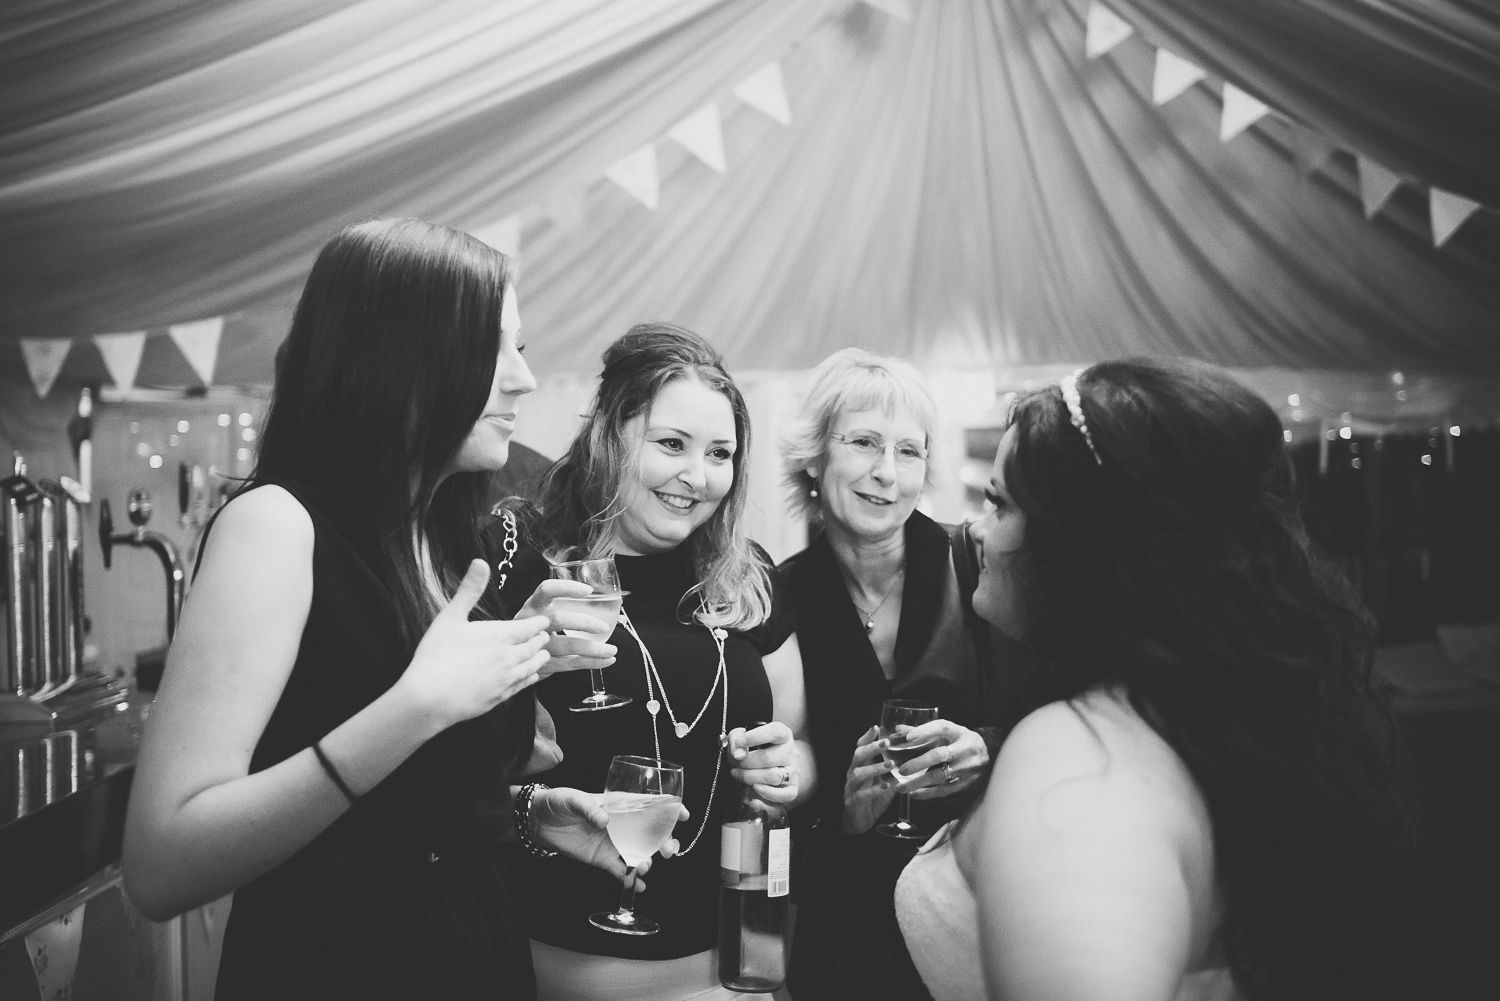 natural-documentary-wedding-photography-cardiff-south-wales-46.jpg